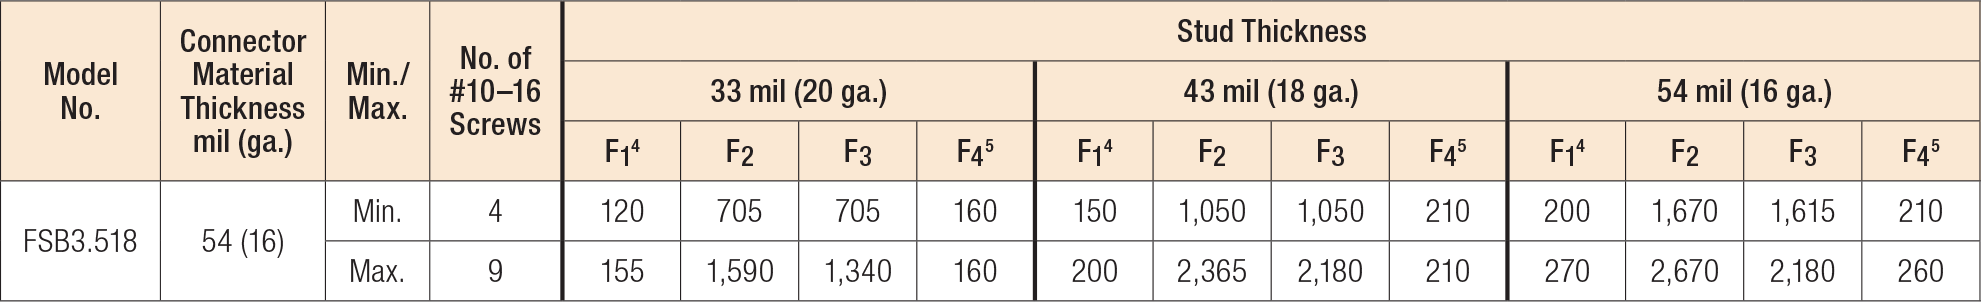 Load Table - FSB Allowable Connector Loads (lb.)